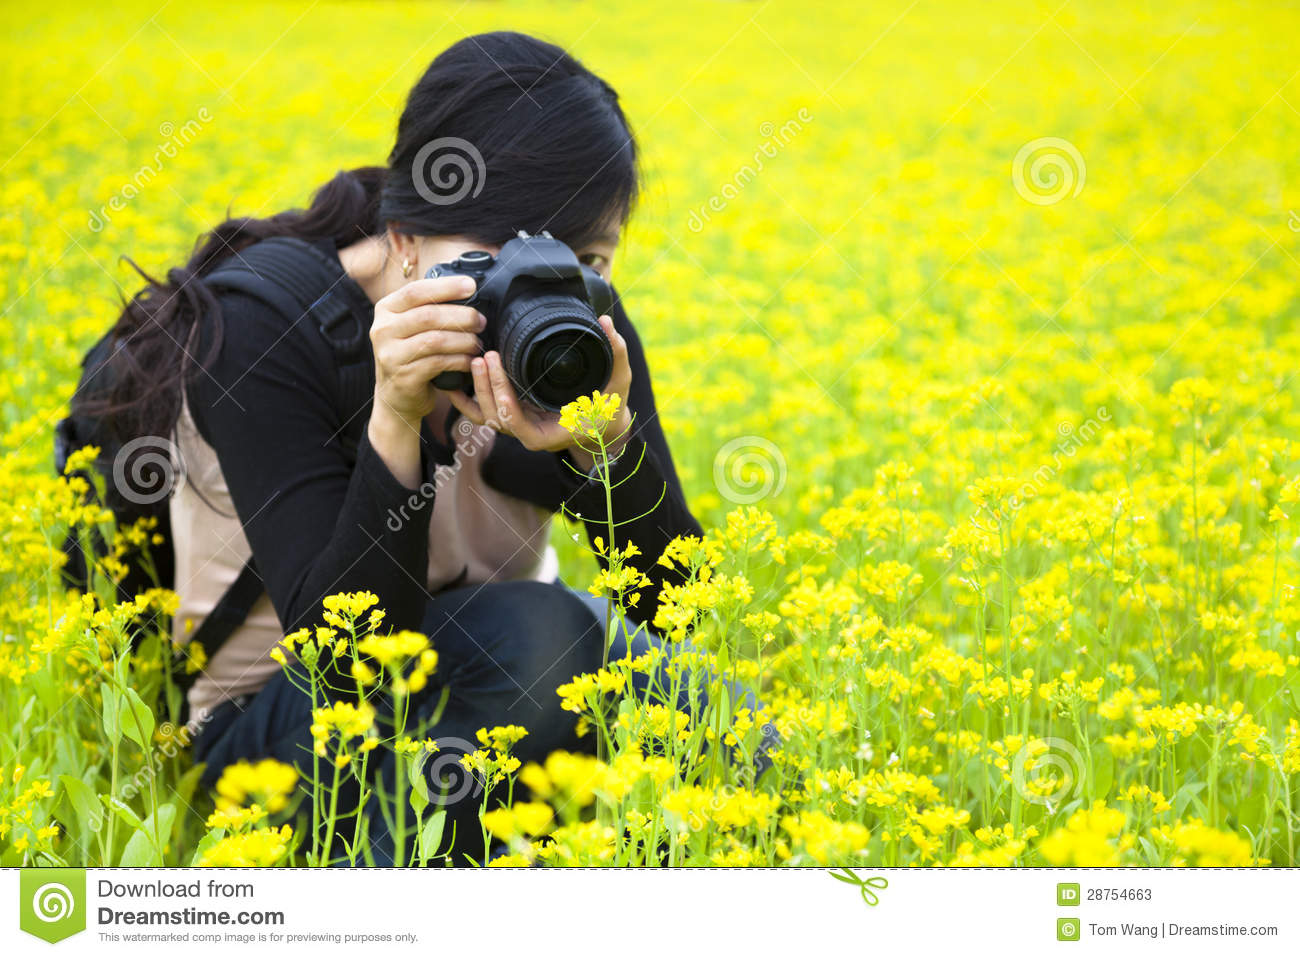 Woman Photographer Taking Pictures In Nature Stock Image